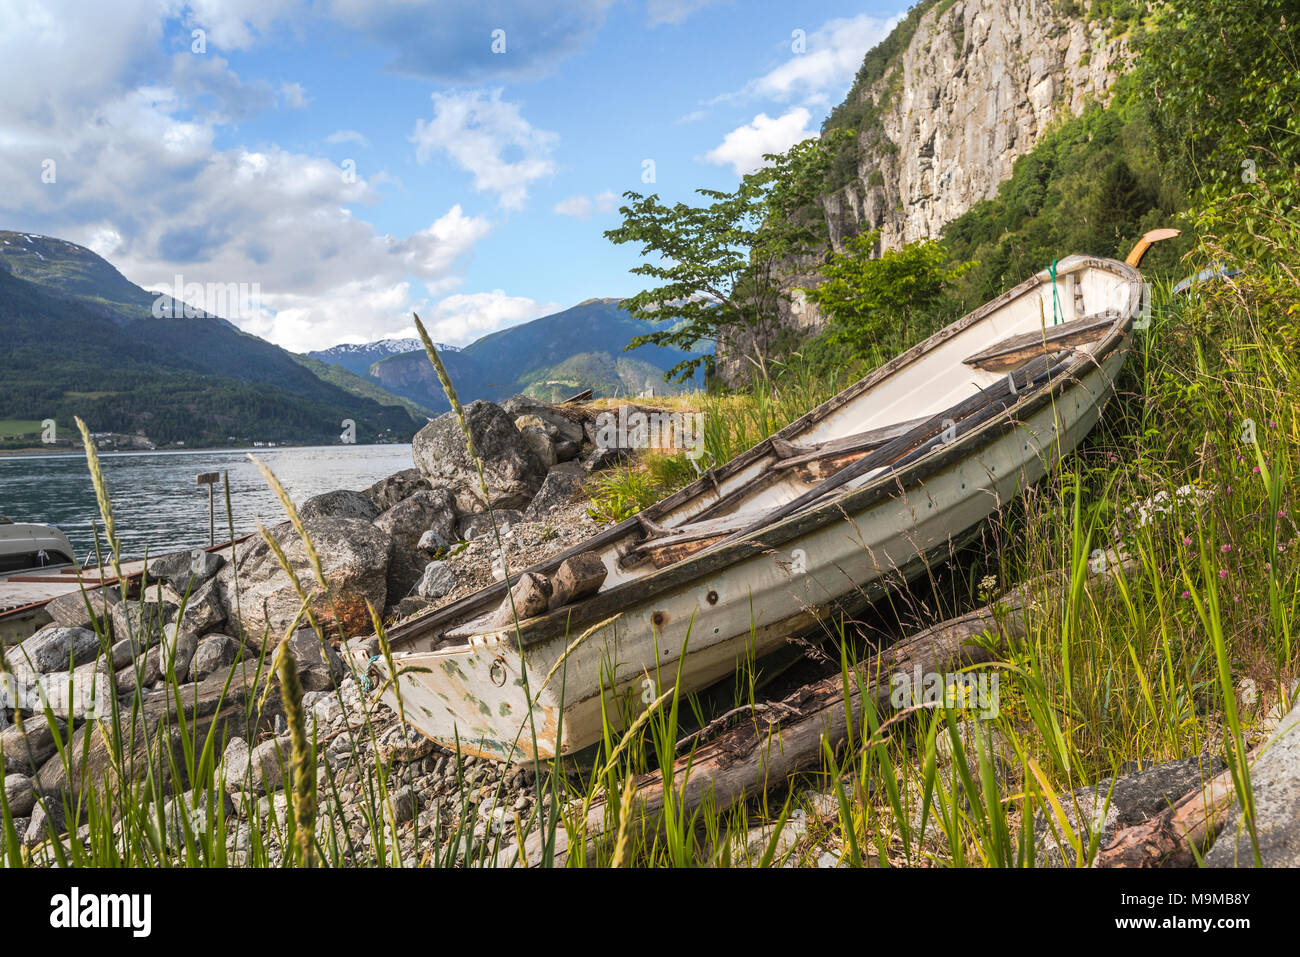 rowing boat at the shore, Lustrafjorden, Norway, idyll at the fjord - Stock Image